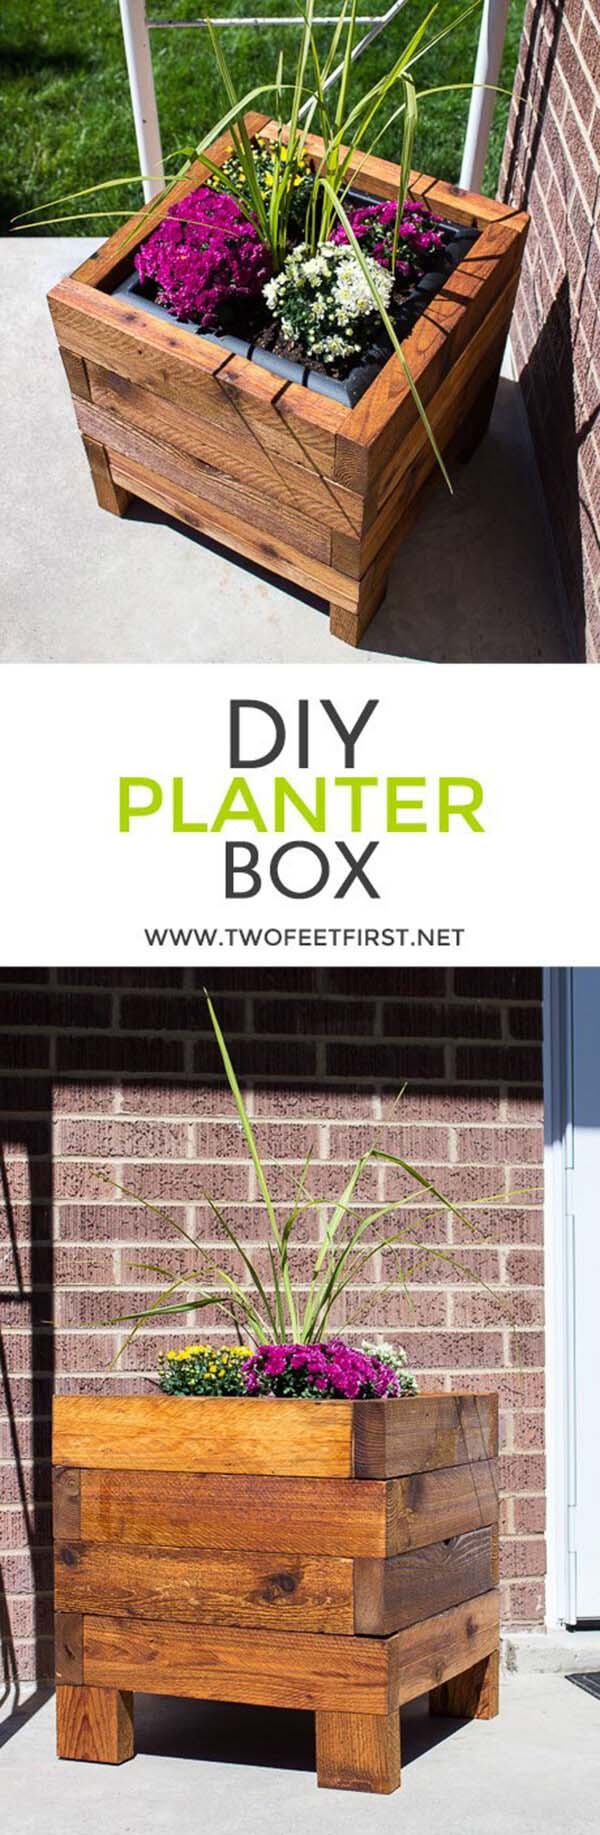 DIY Small Wooden Planter Box #diy #planter #wood #flower #pallet #decorhomeideas